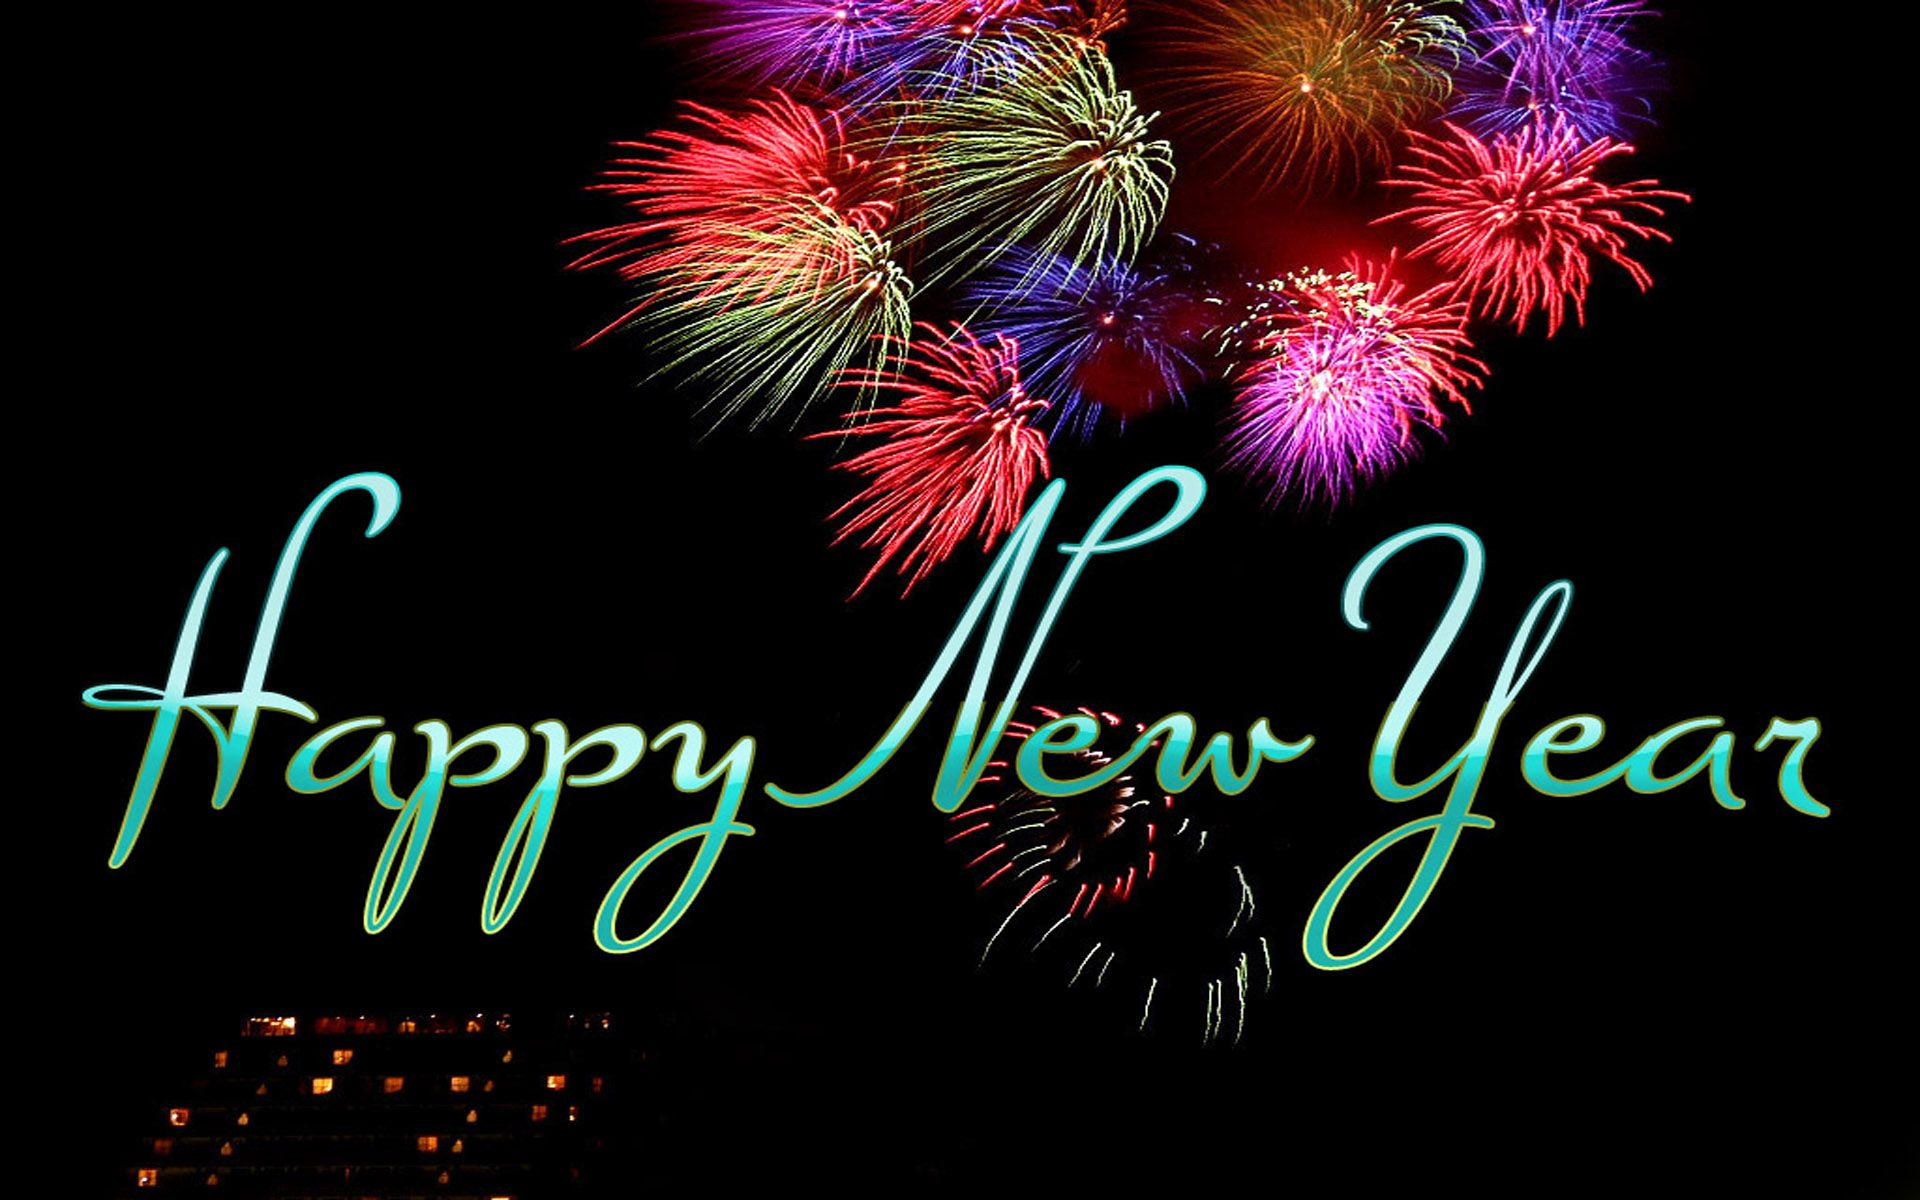 happy new year images hd wallpapers pictures photo pics free